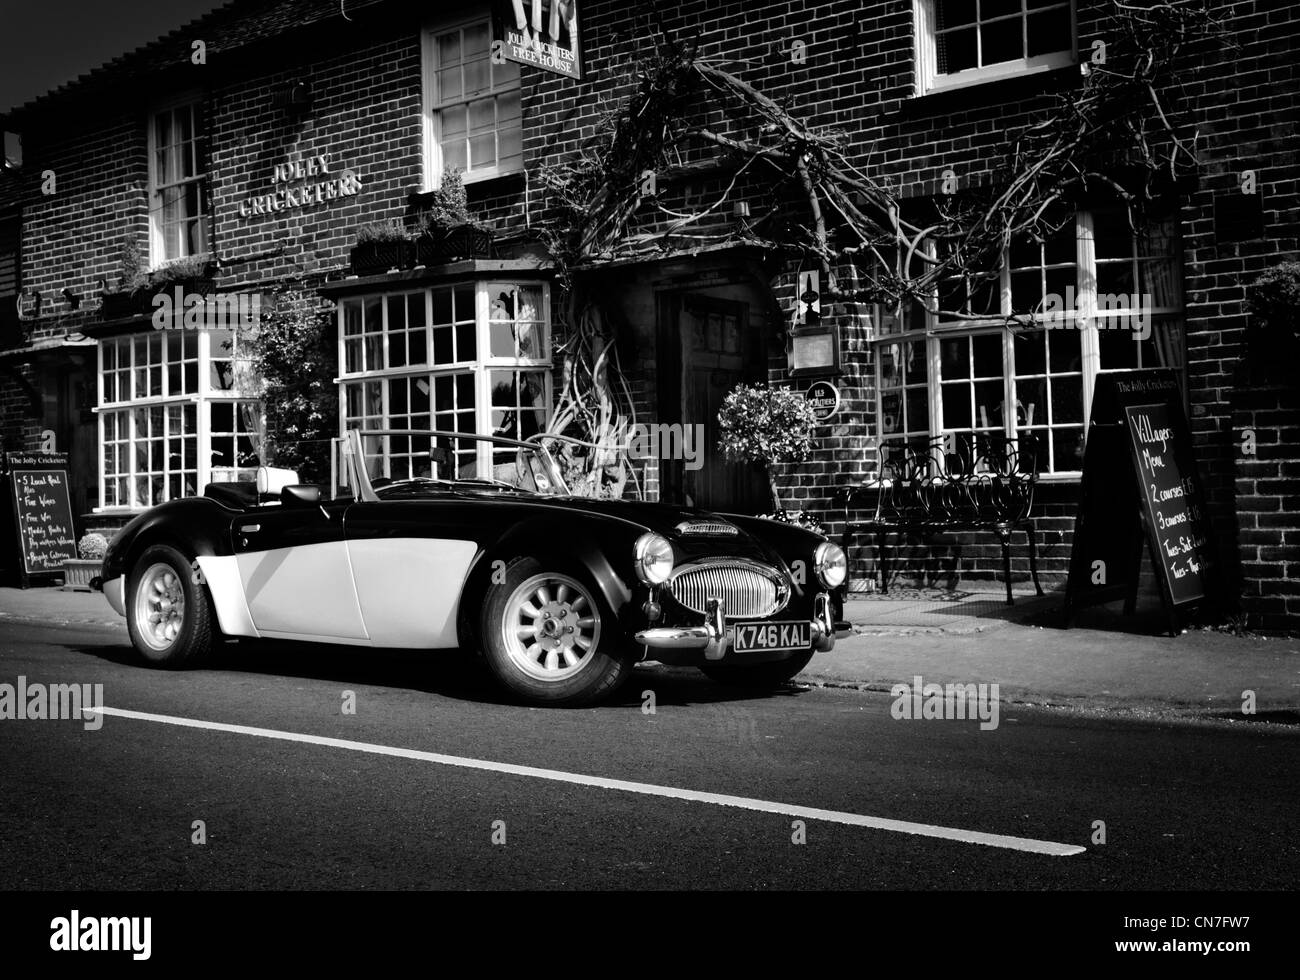 A vintage Austin Healey 3 litre convertible classic sports car parked outside the Jolly Cricketers pub Seer Green - Stock Image